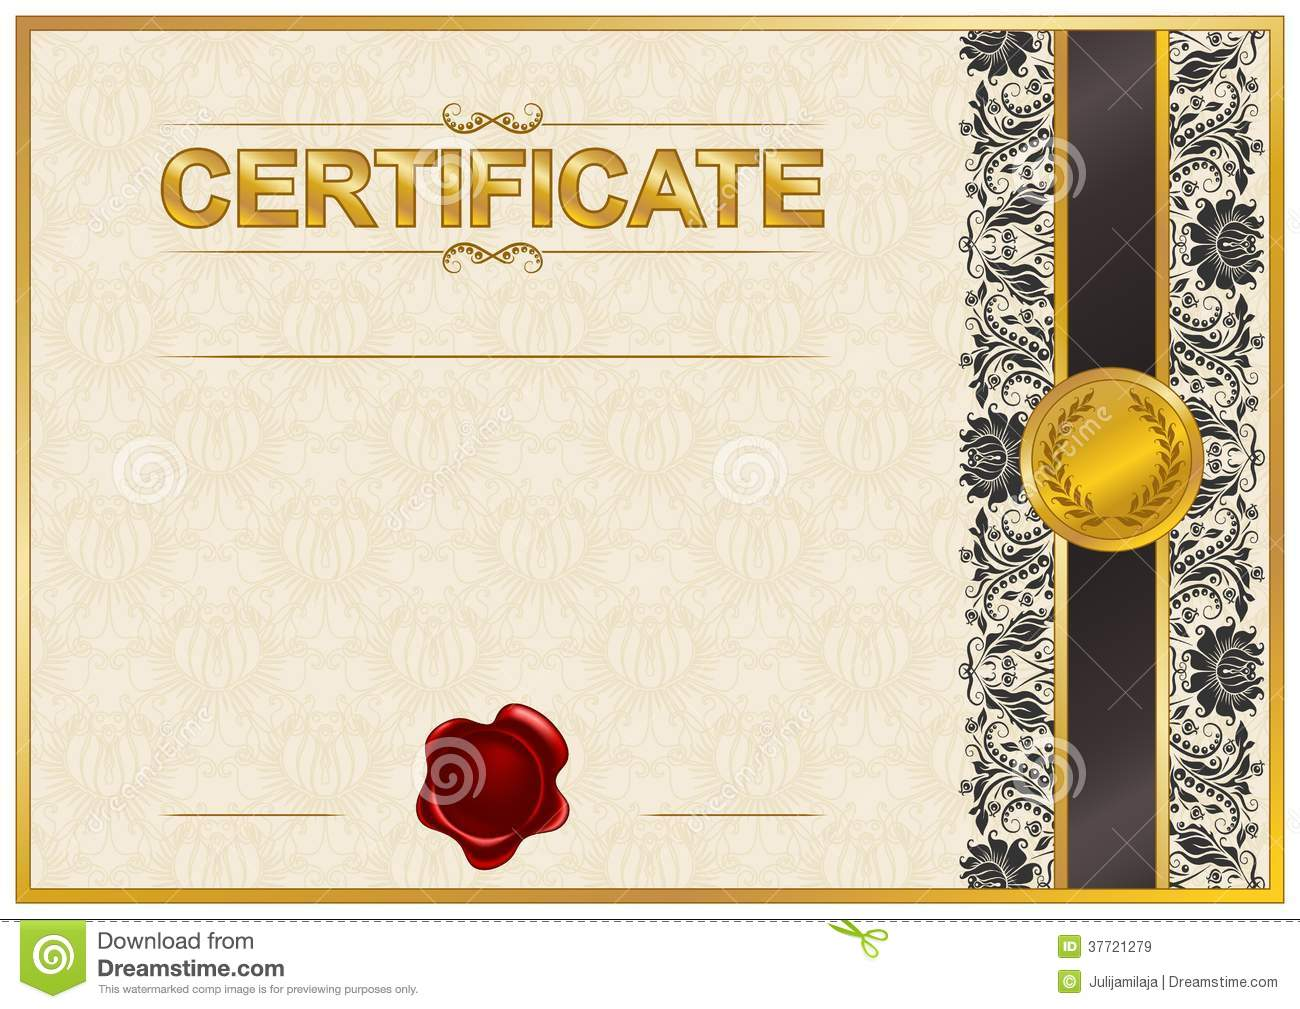 Horse riding gift certificate template free invitation card horse riding gift certificate template release of liability elegant template certificate diploma lace ornament wax seal yadclub Choice Image